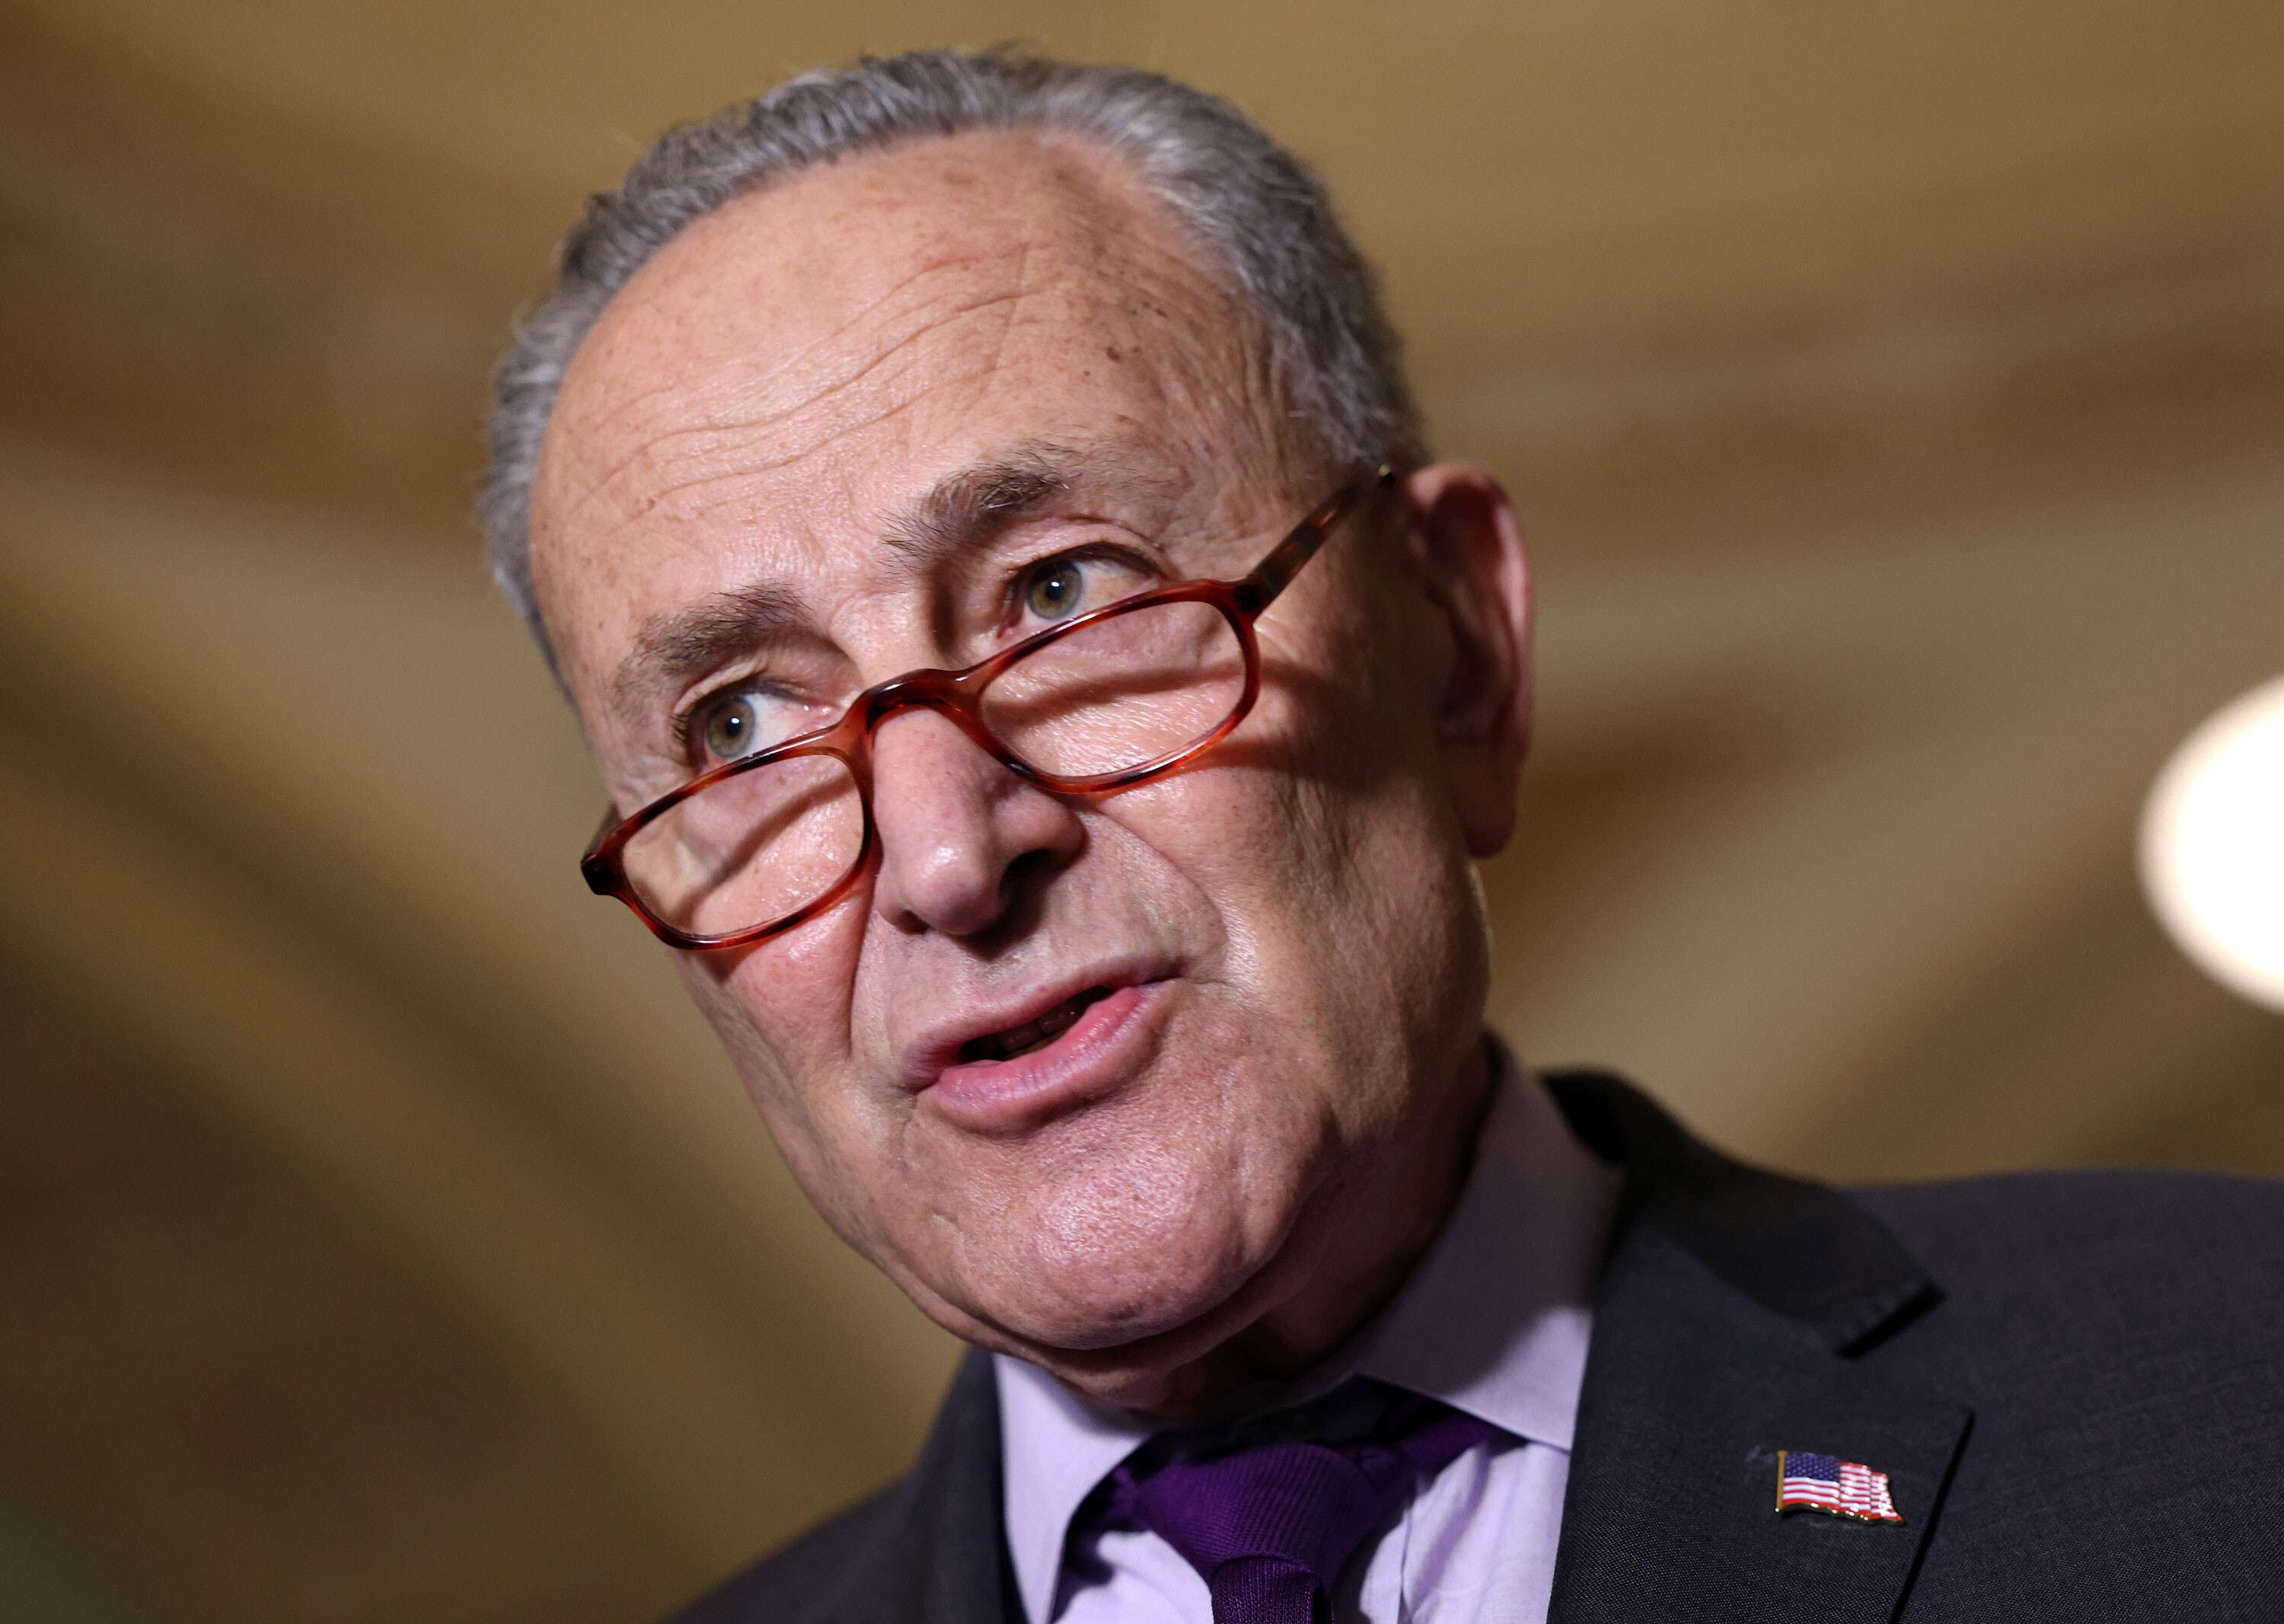 Senate votes to move ahead on trillion-dollar bipartisan infrastructure deal